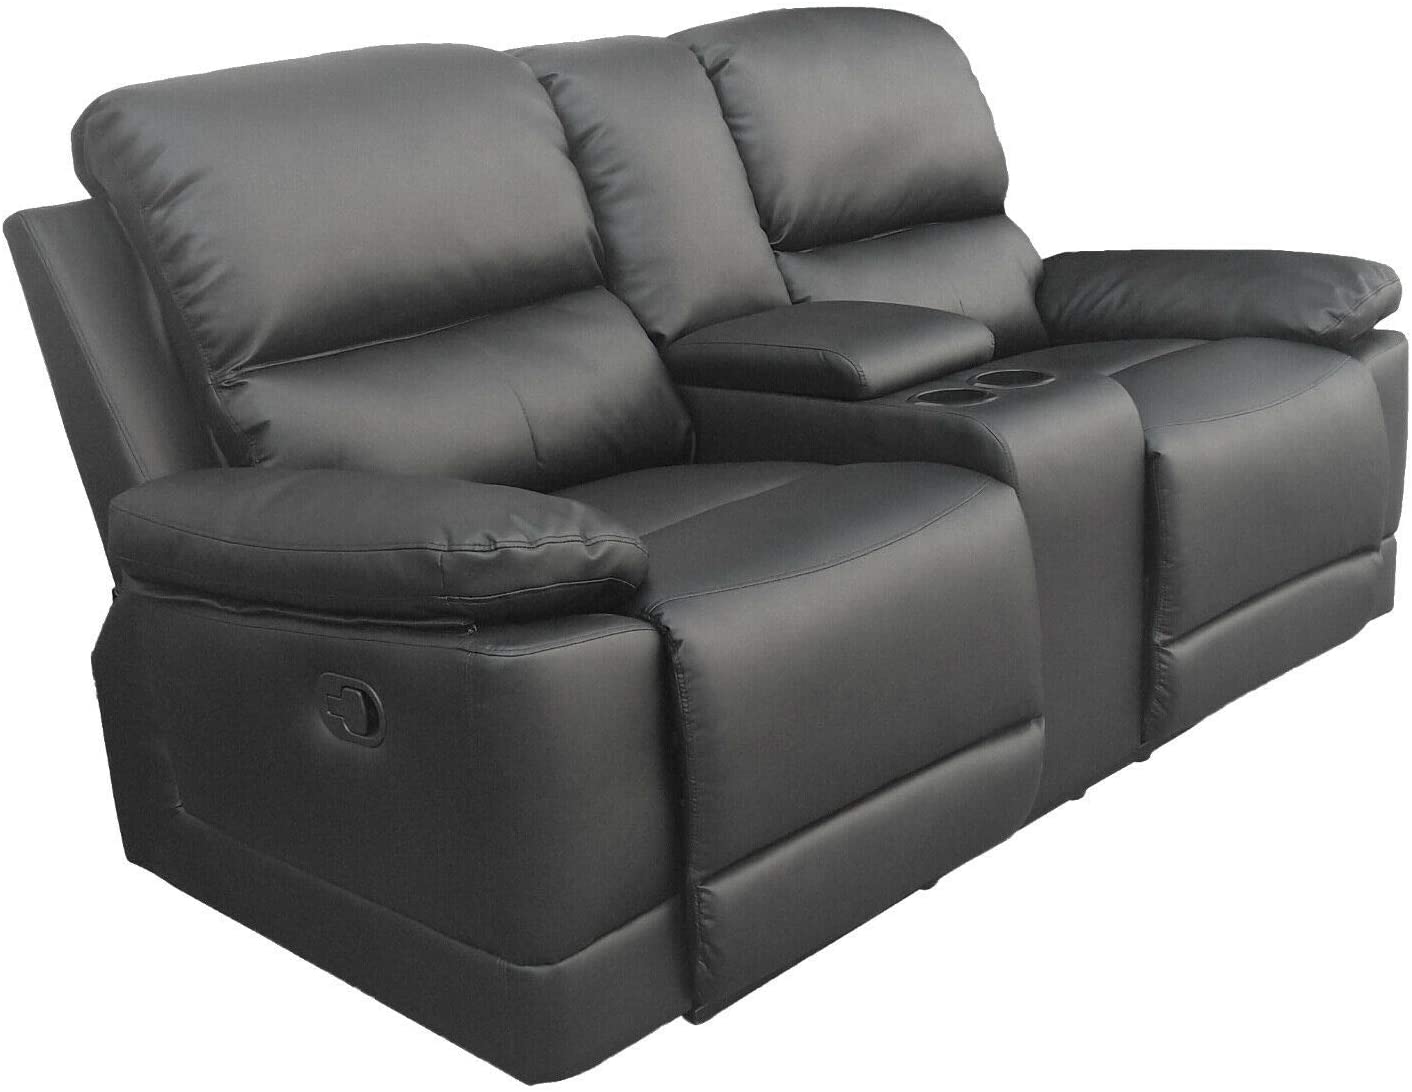 Full Size of Kinosessel 2er Microfaser Colourliving Fernsehsessel Relaxsessel Zweisitzer Aus Sofa Grau Wohnzimmer Kinosessel 2er Microfaser